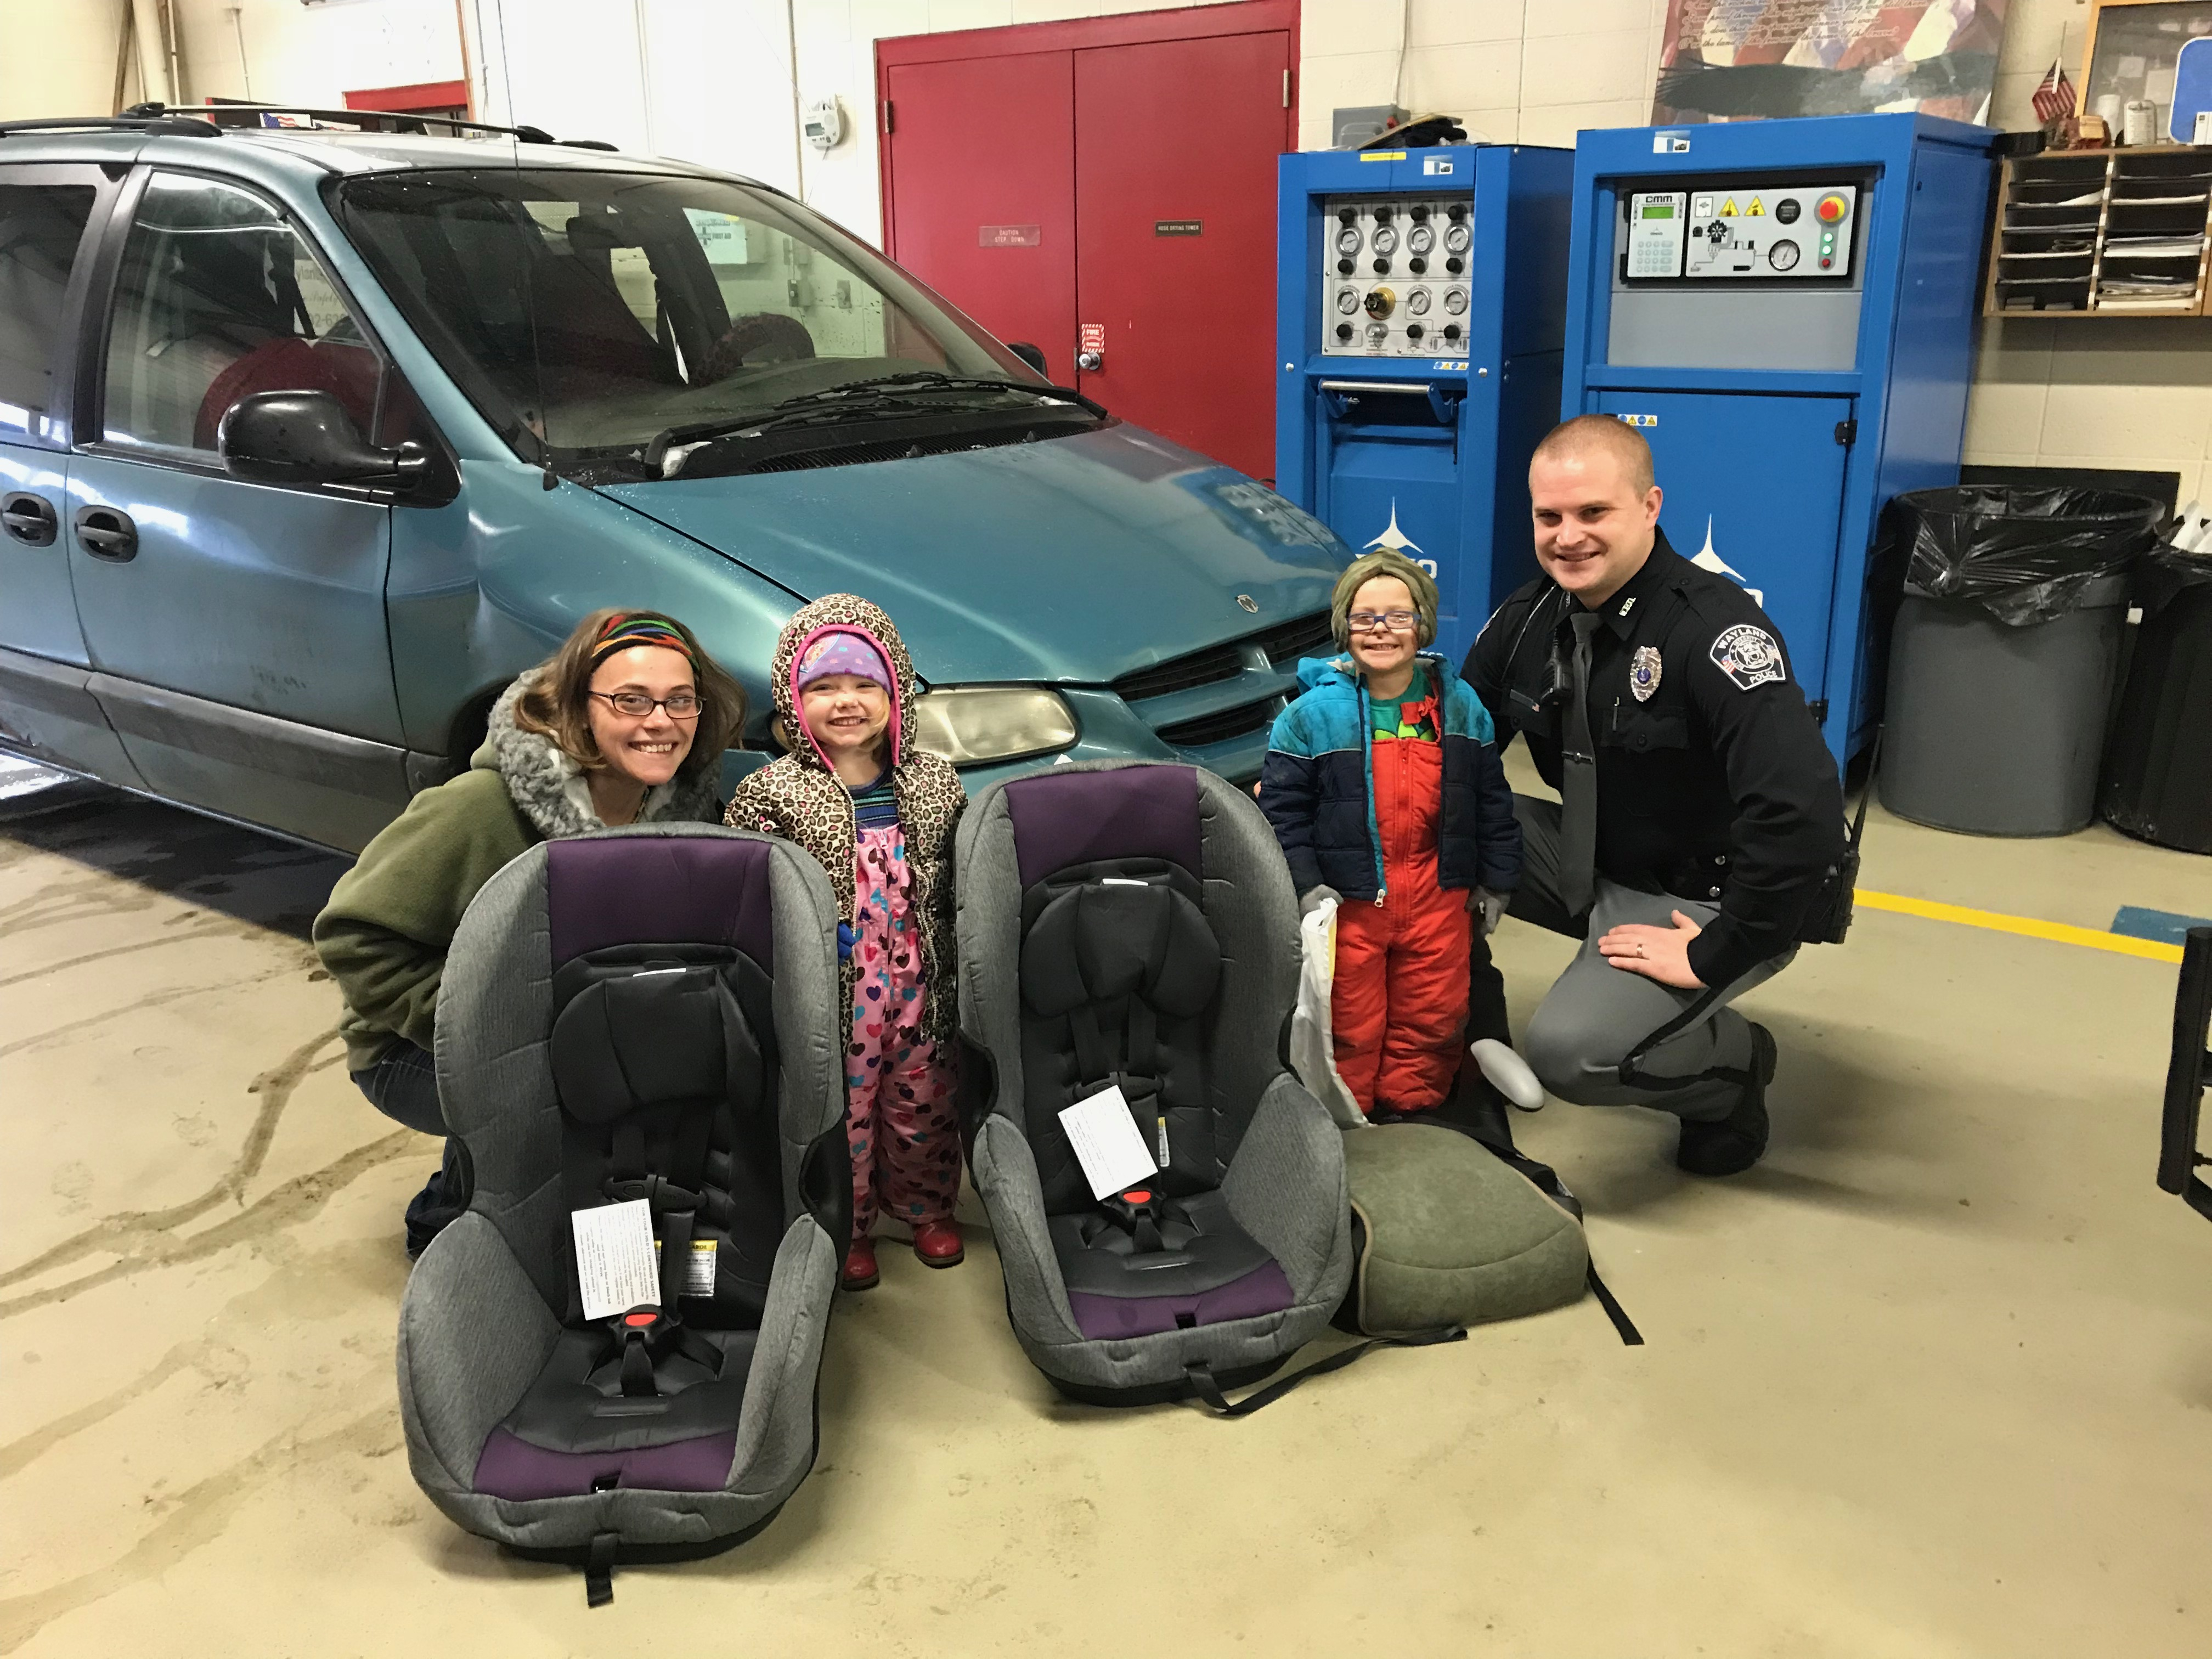 imgCar Seat OHSP Grant